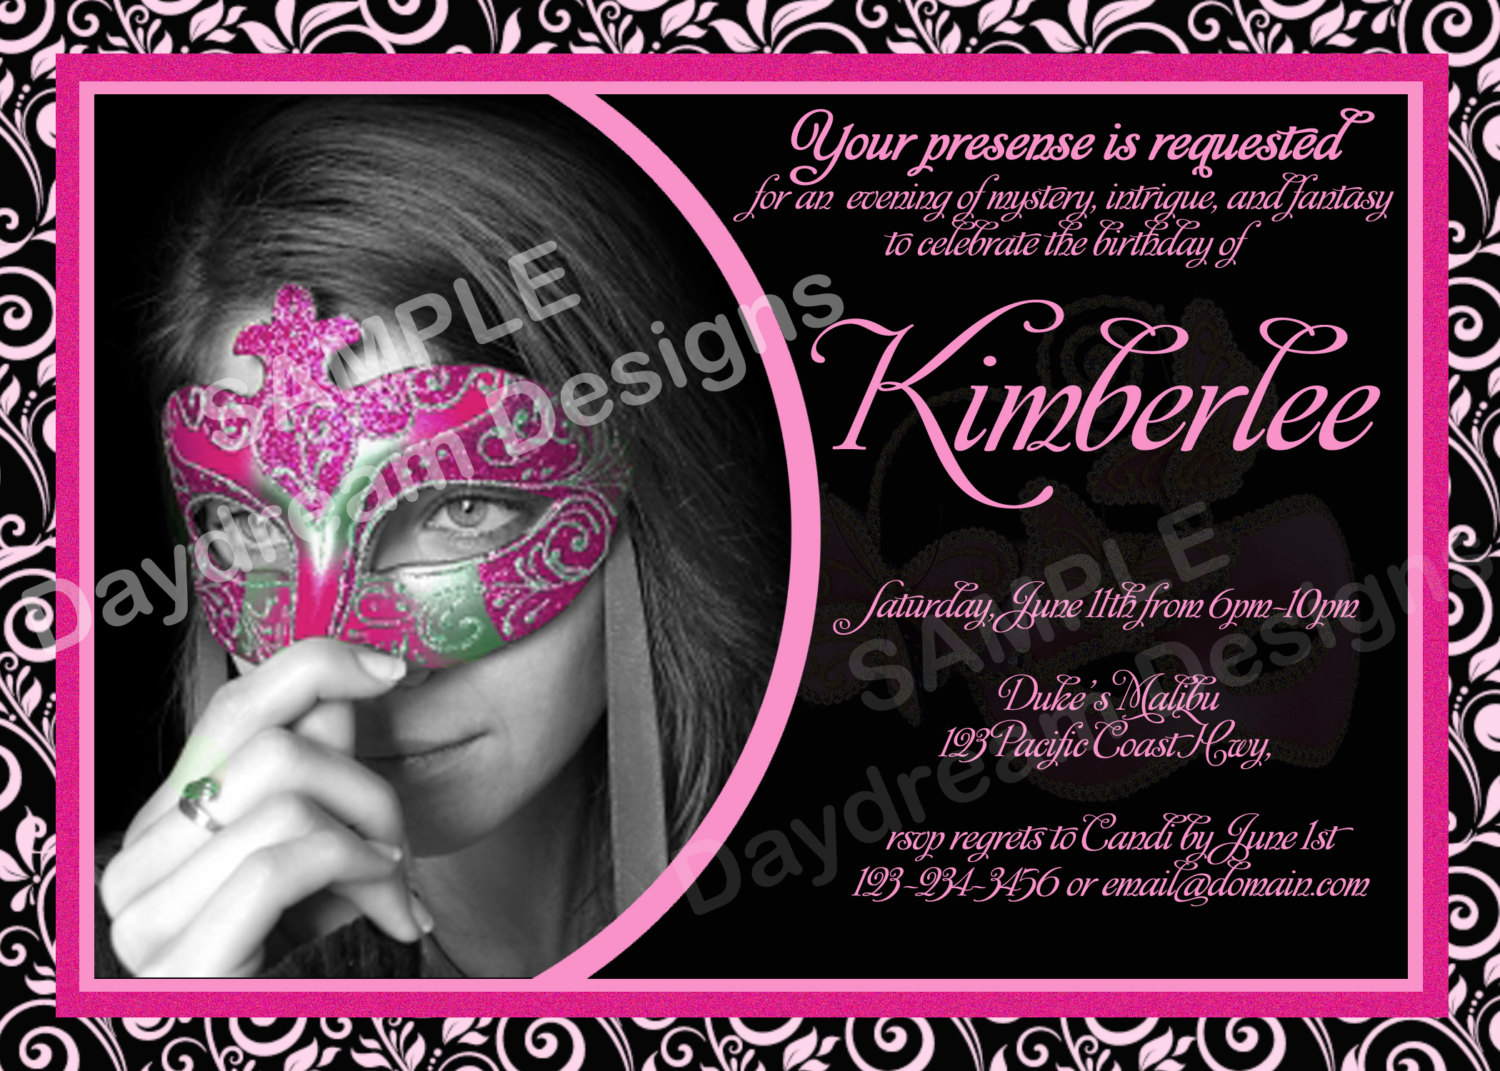 masquerade birthday party invitation wording ; masquerade-party-invitation-wording-is-the-fusion-of-concept-and-creativity-on-fair-Party-invitations-17